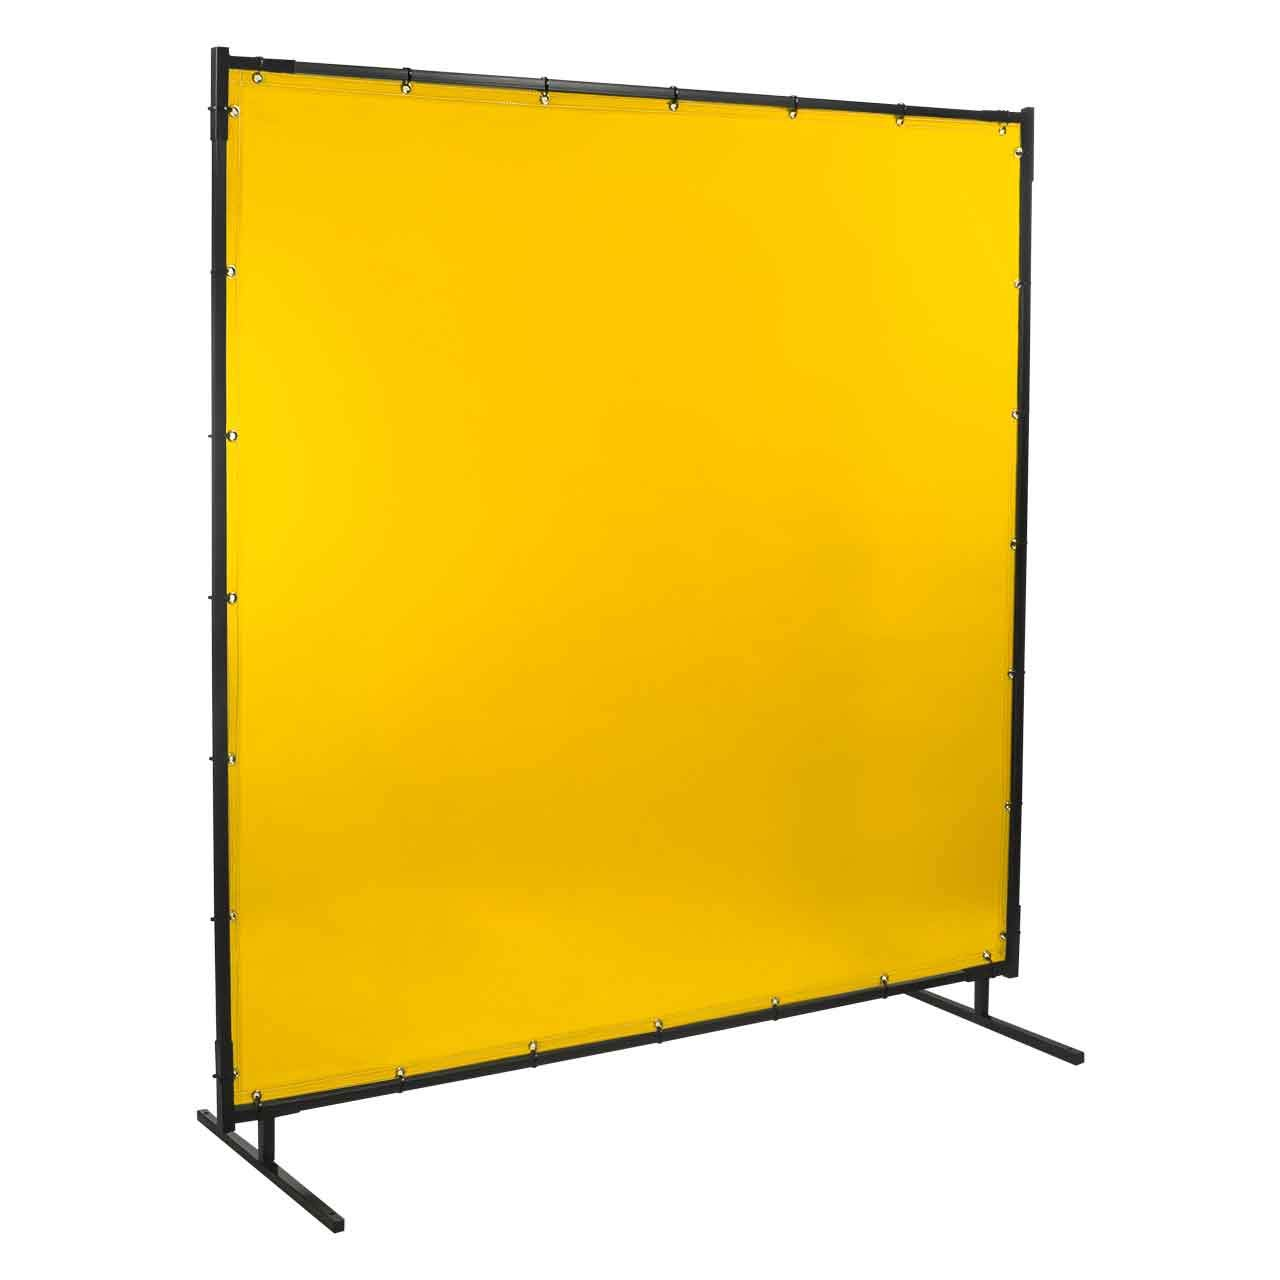 Steiner 534HD-6X8 Protect-O-Screen HD Welding Screen with Flame Retardant 14 Mil Tinted Transparent Vinyl Curtain, Yellow, 6' x 8' by Steiner